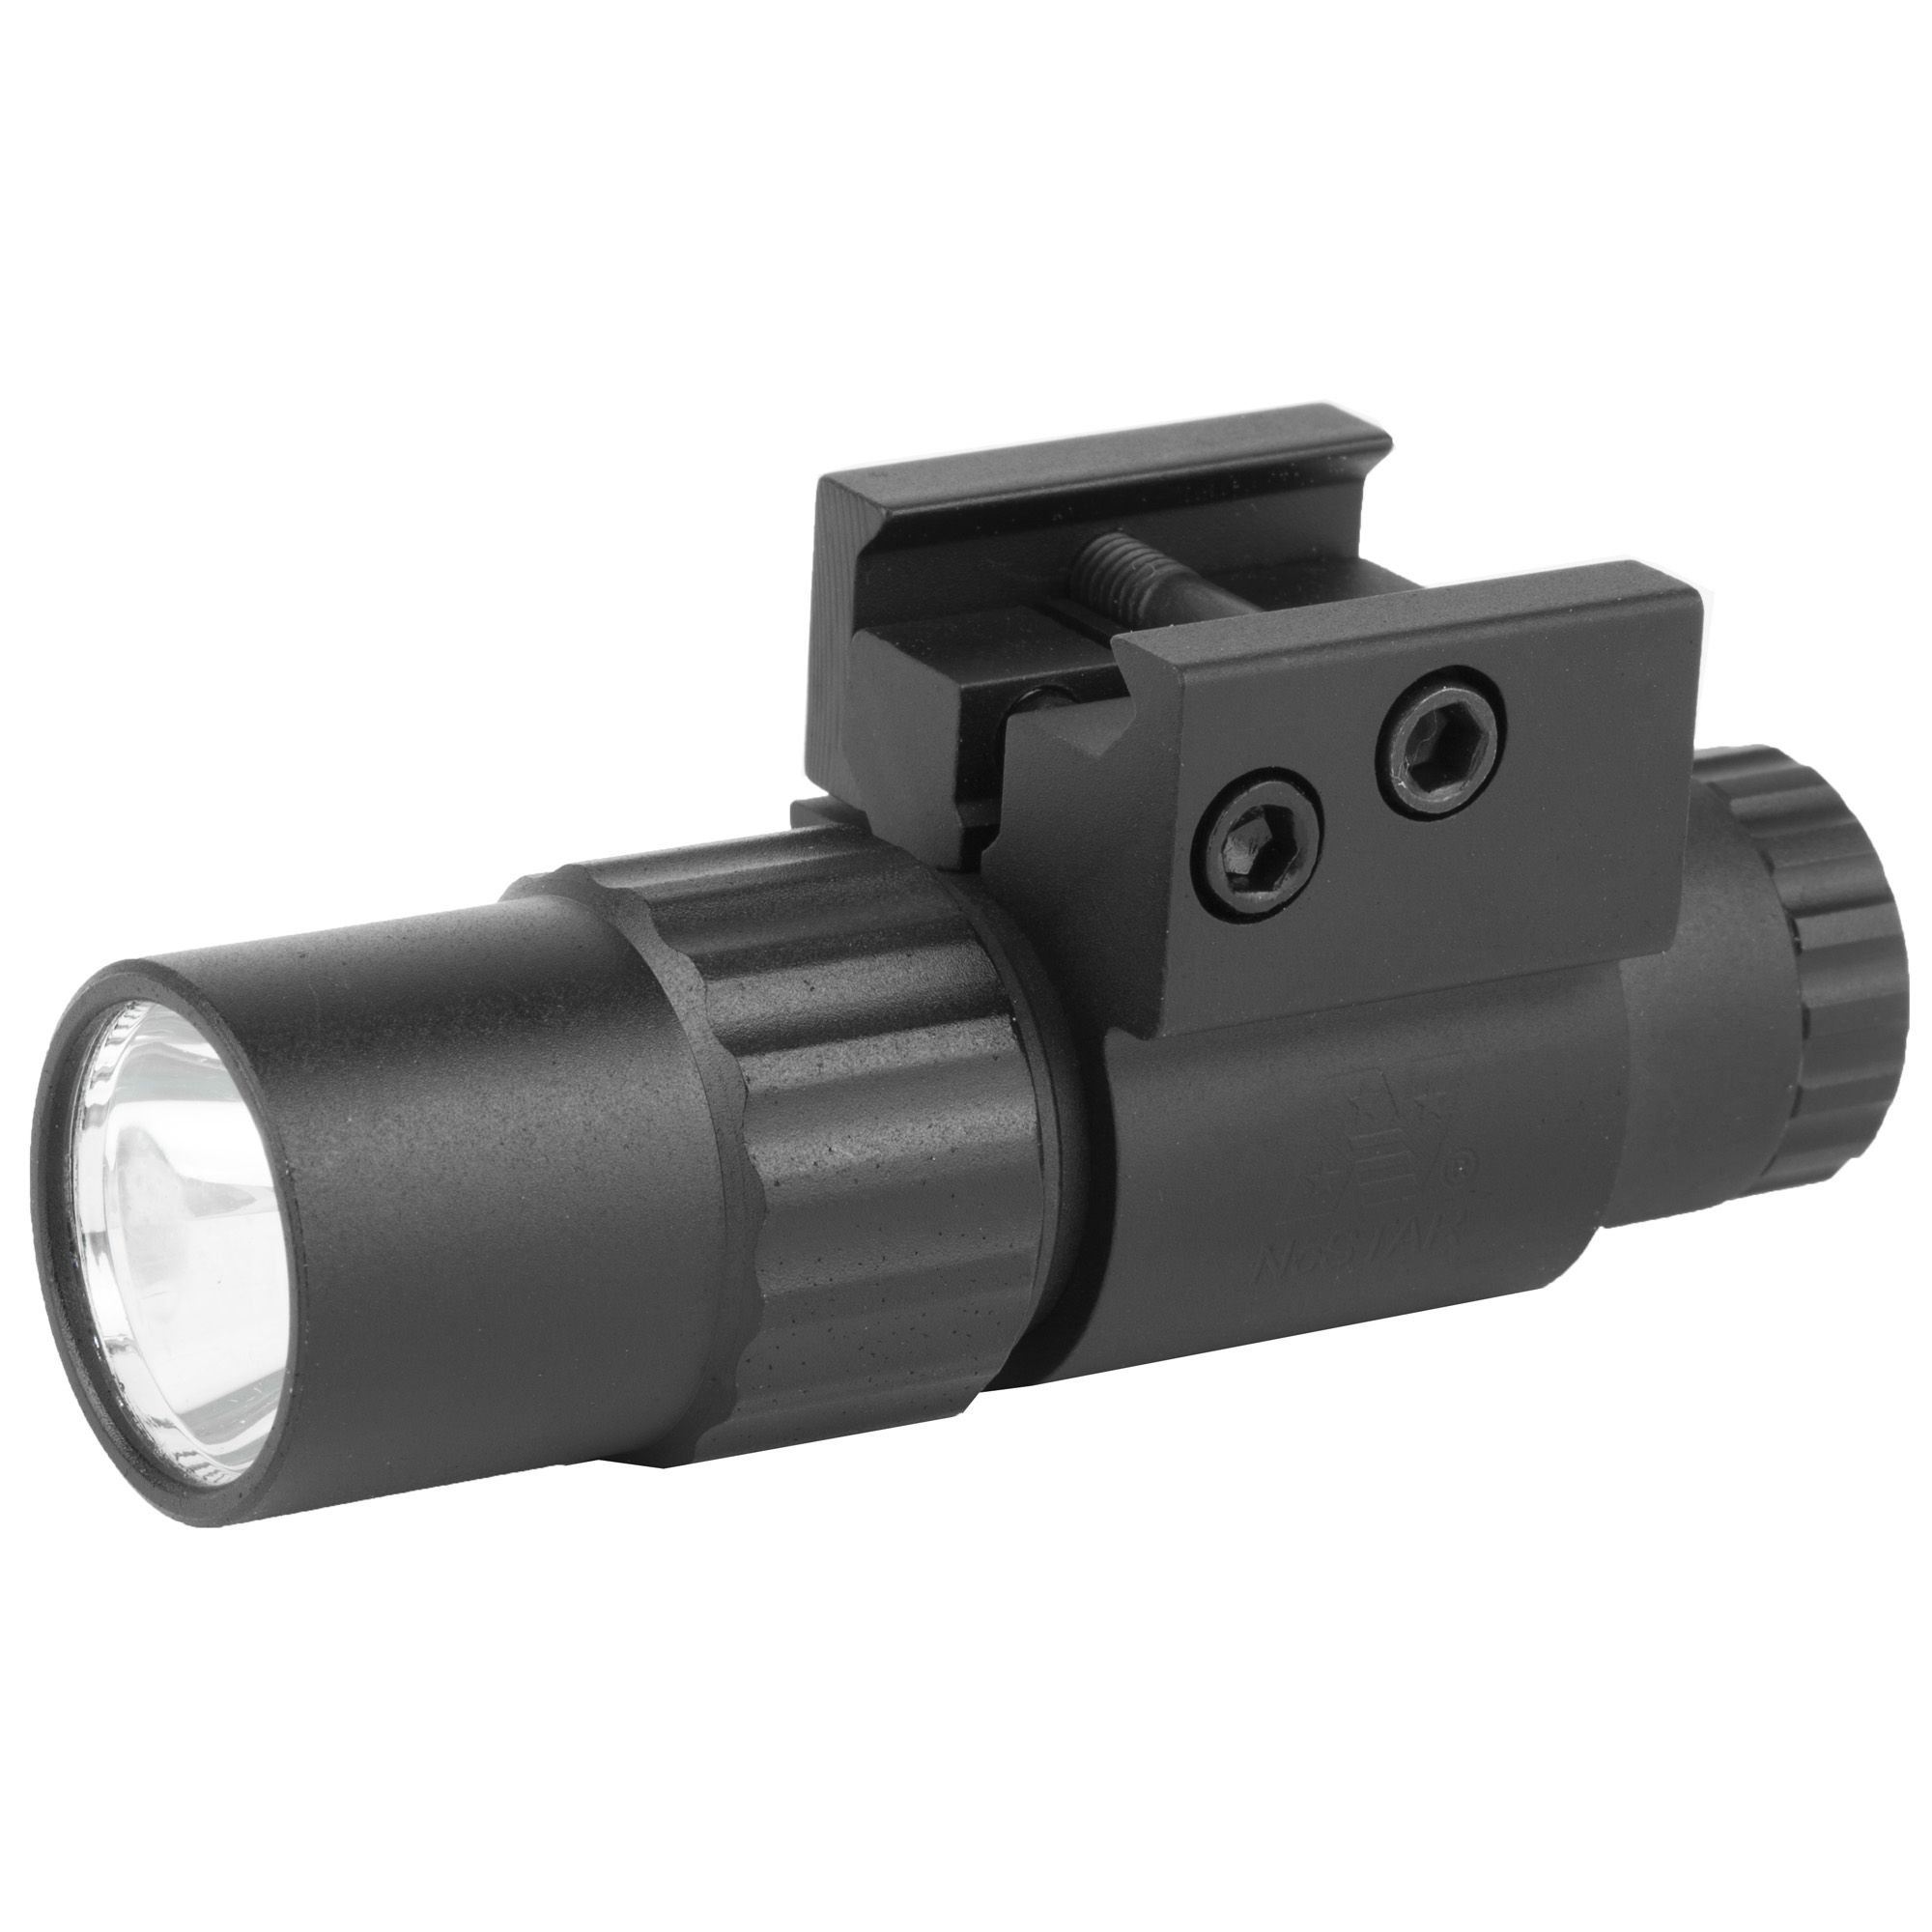 Tactical light from NcStar.